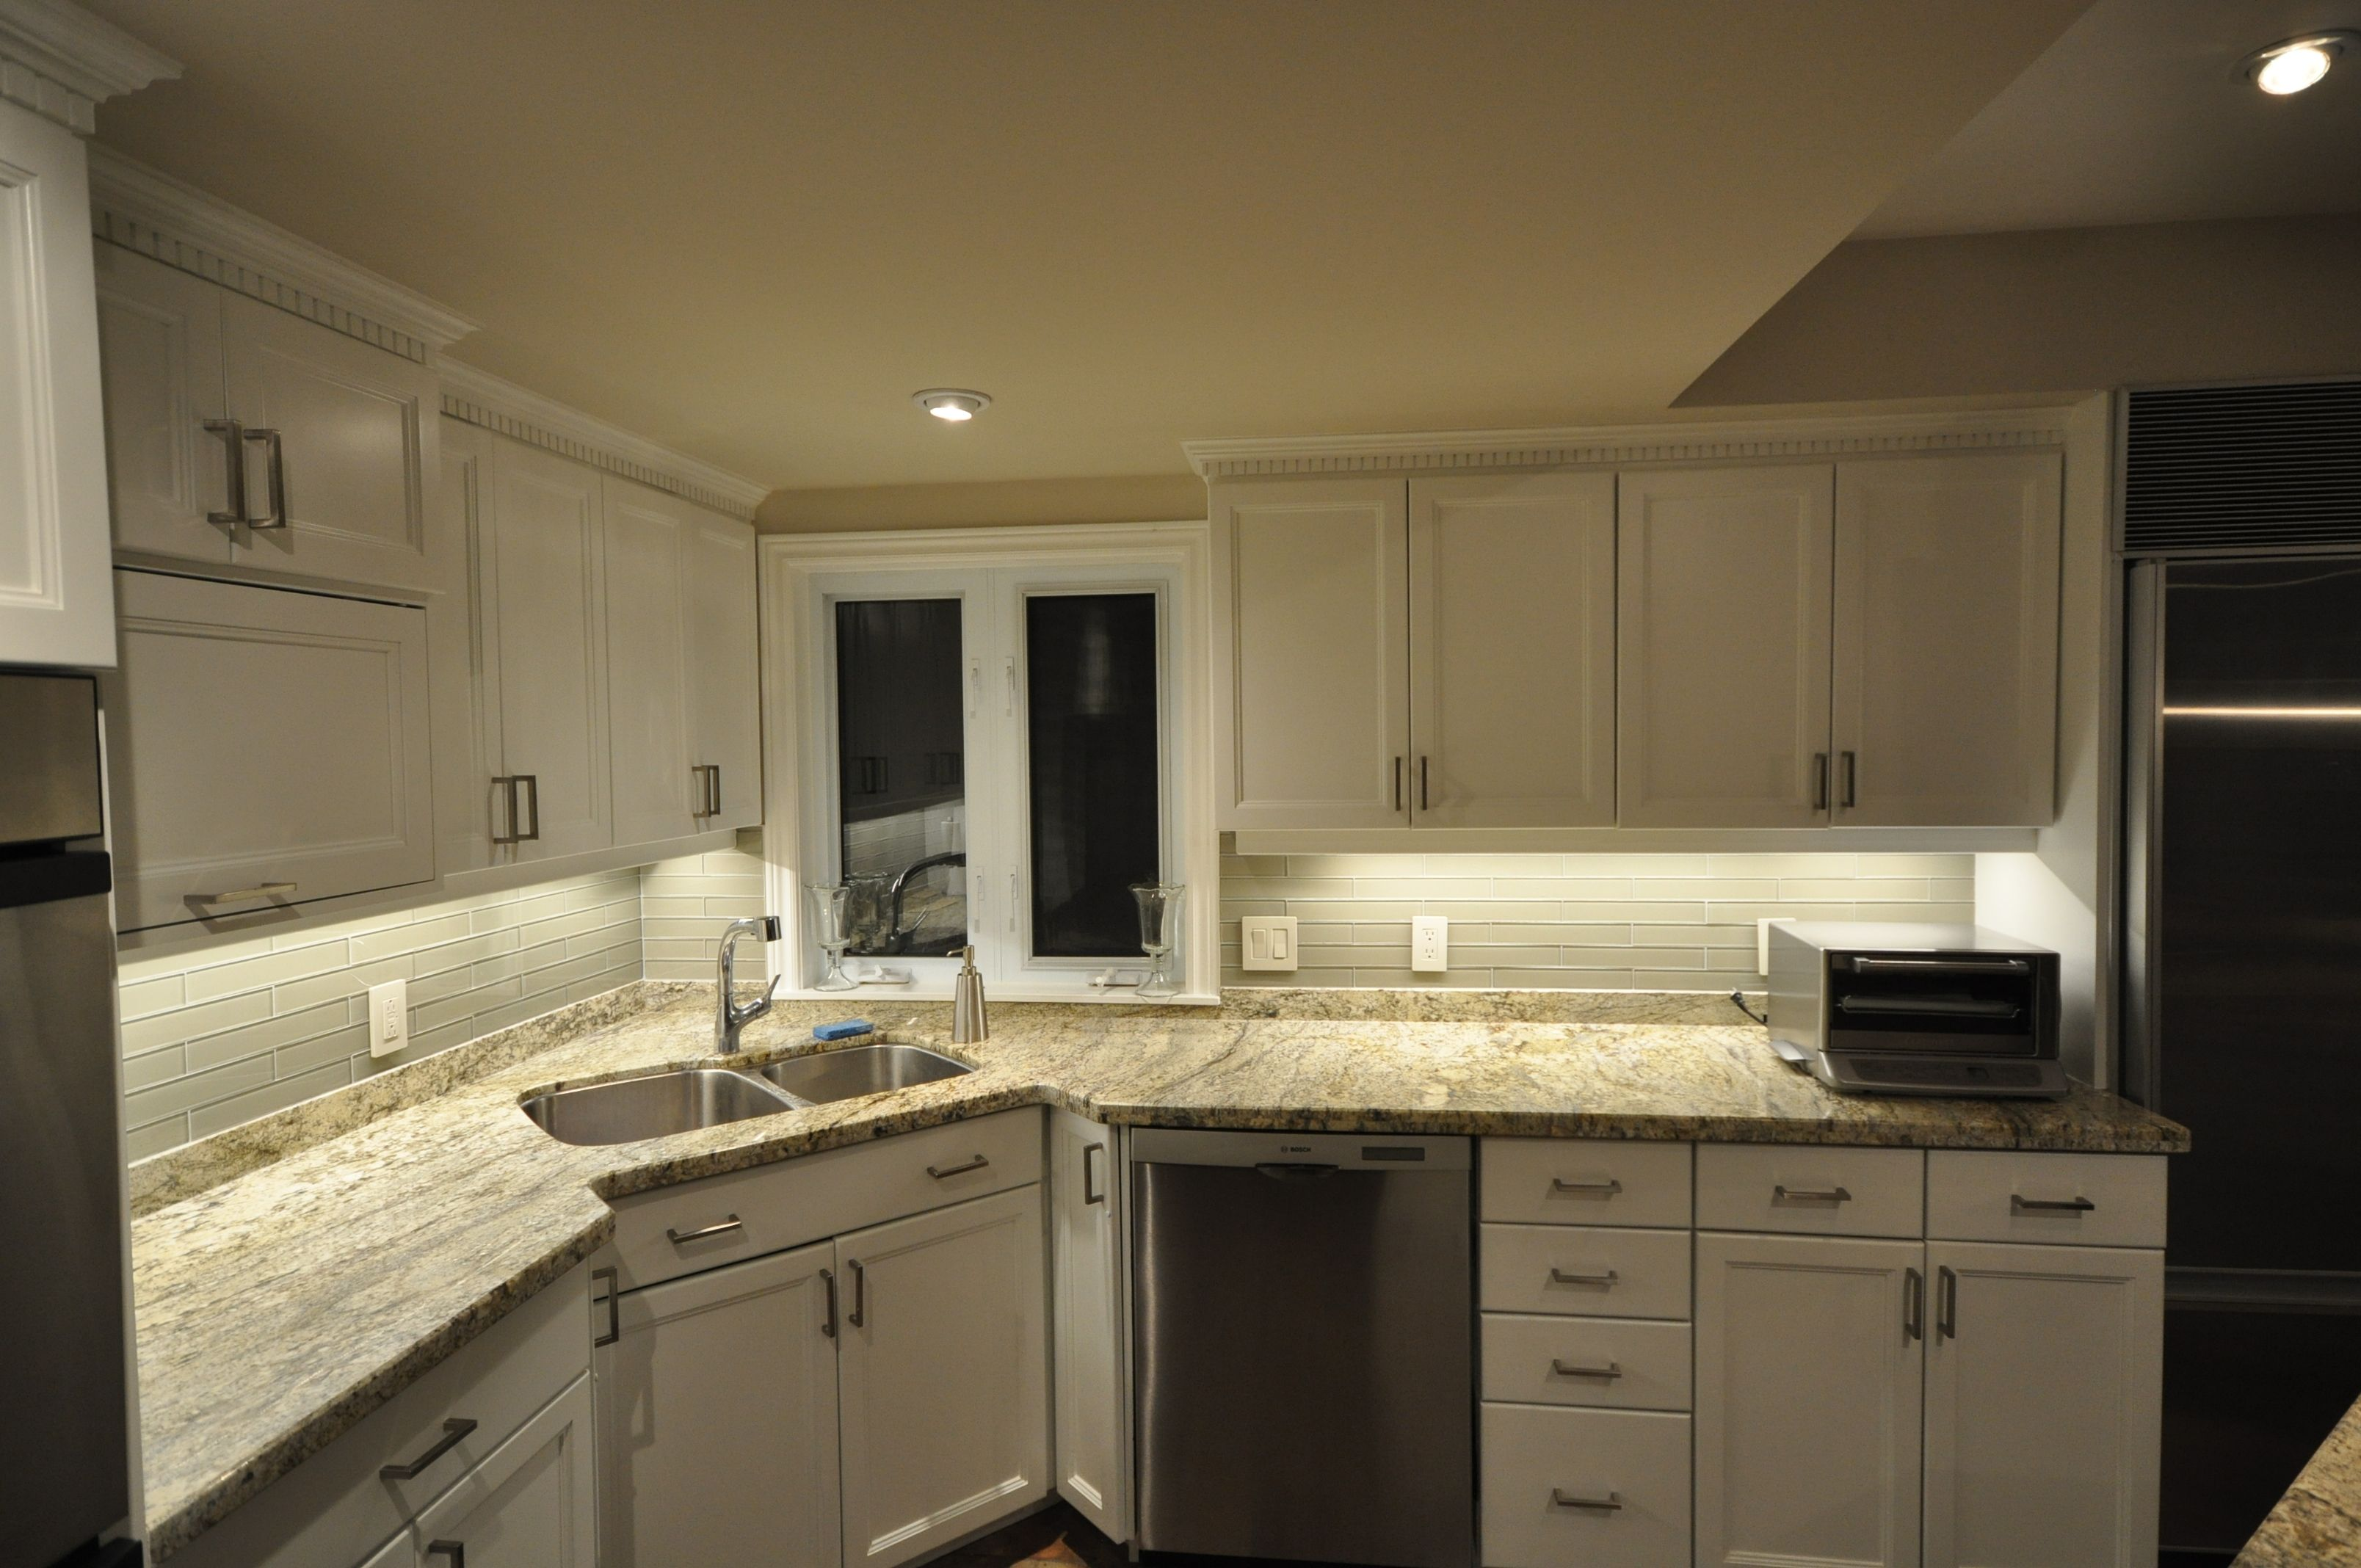 Kitchen Counter Light Rab Design 39s Led Strip Lights Install For Under Cabinet